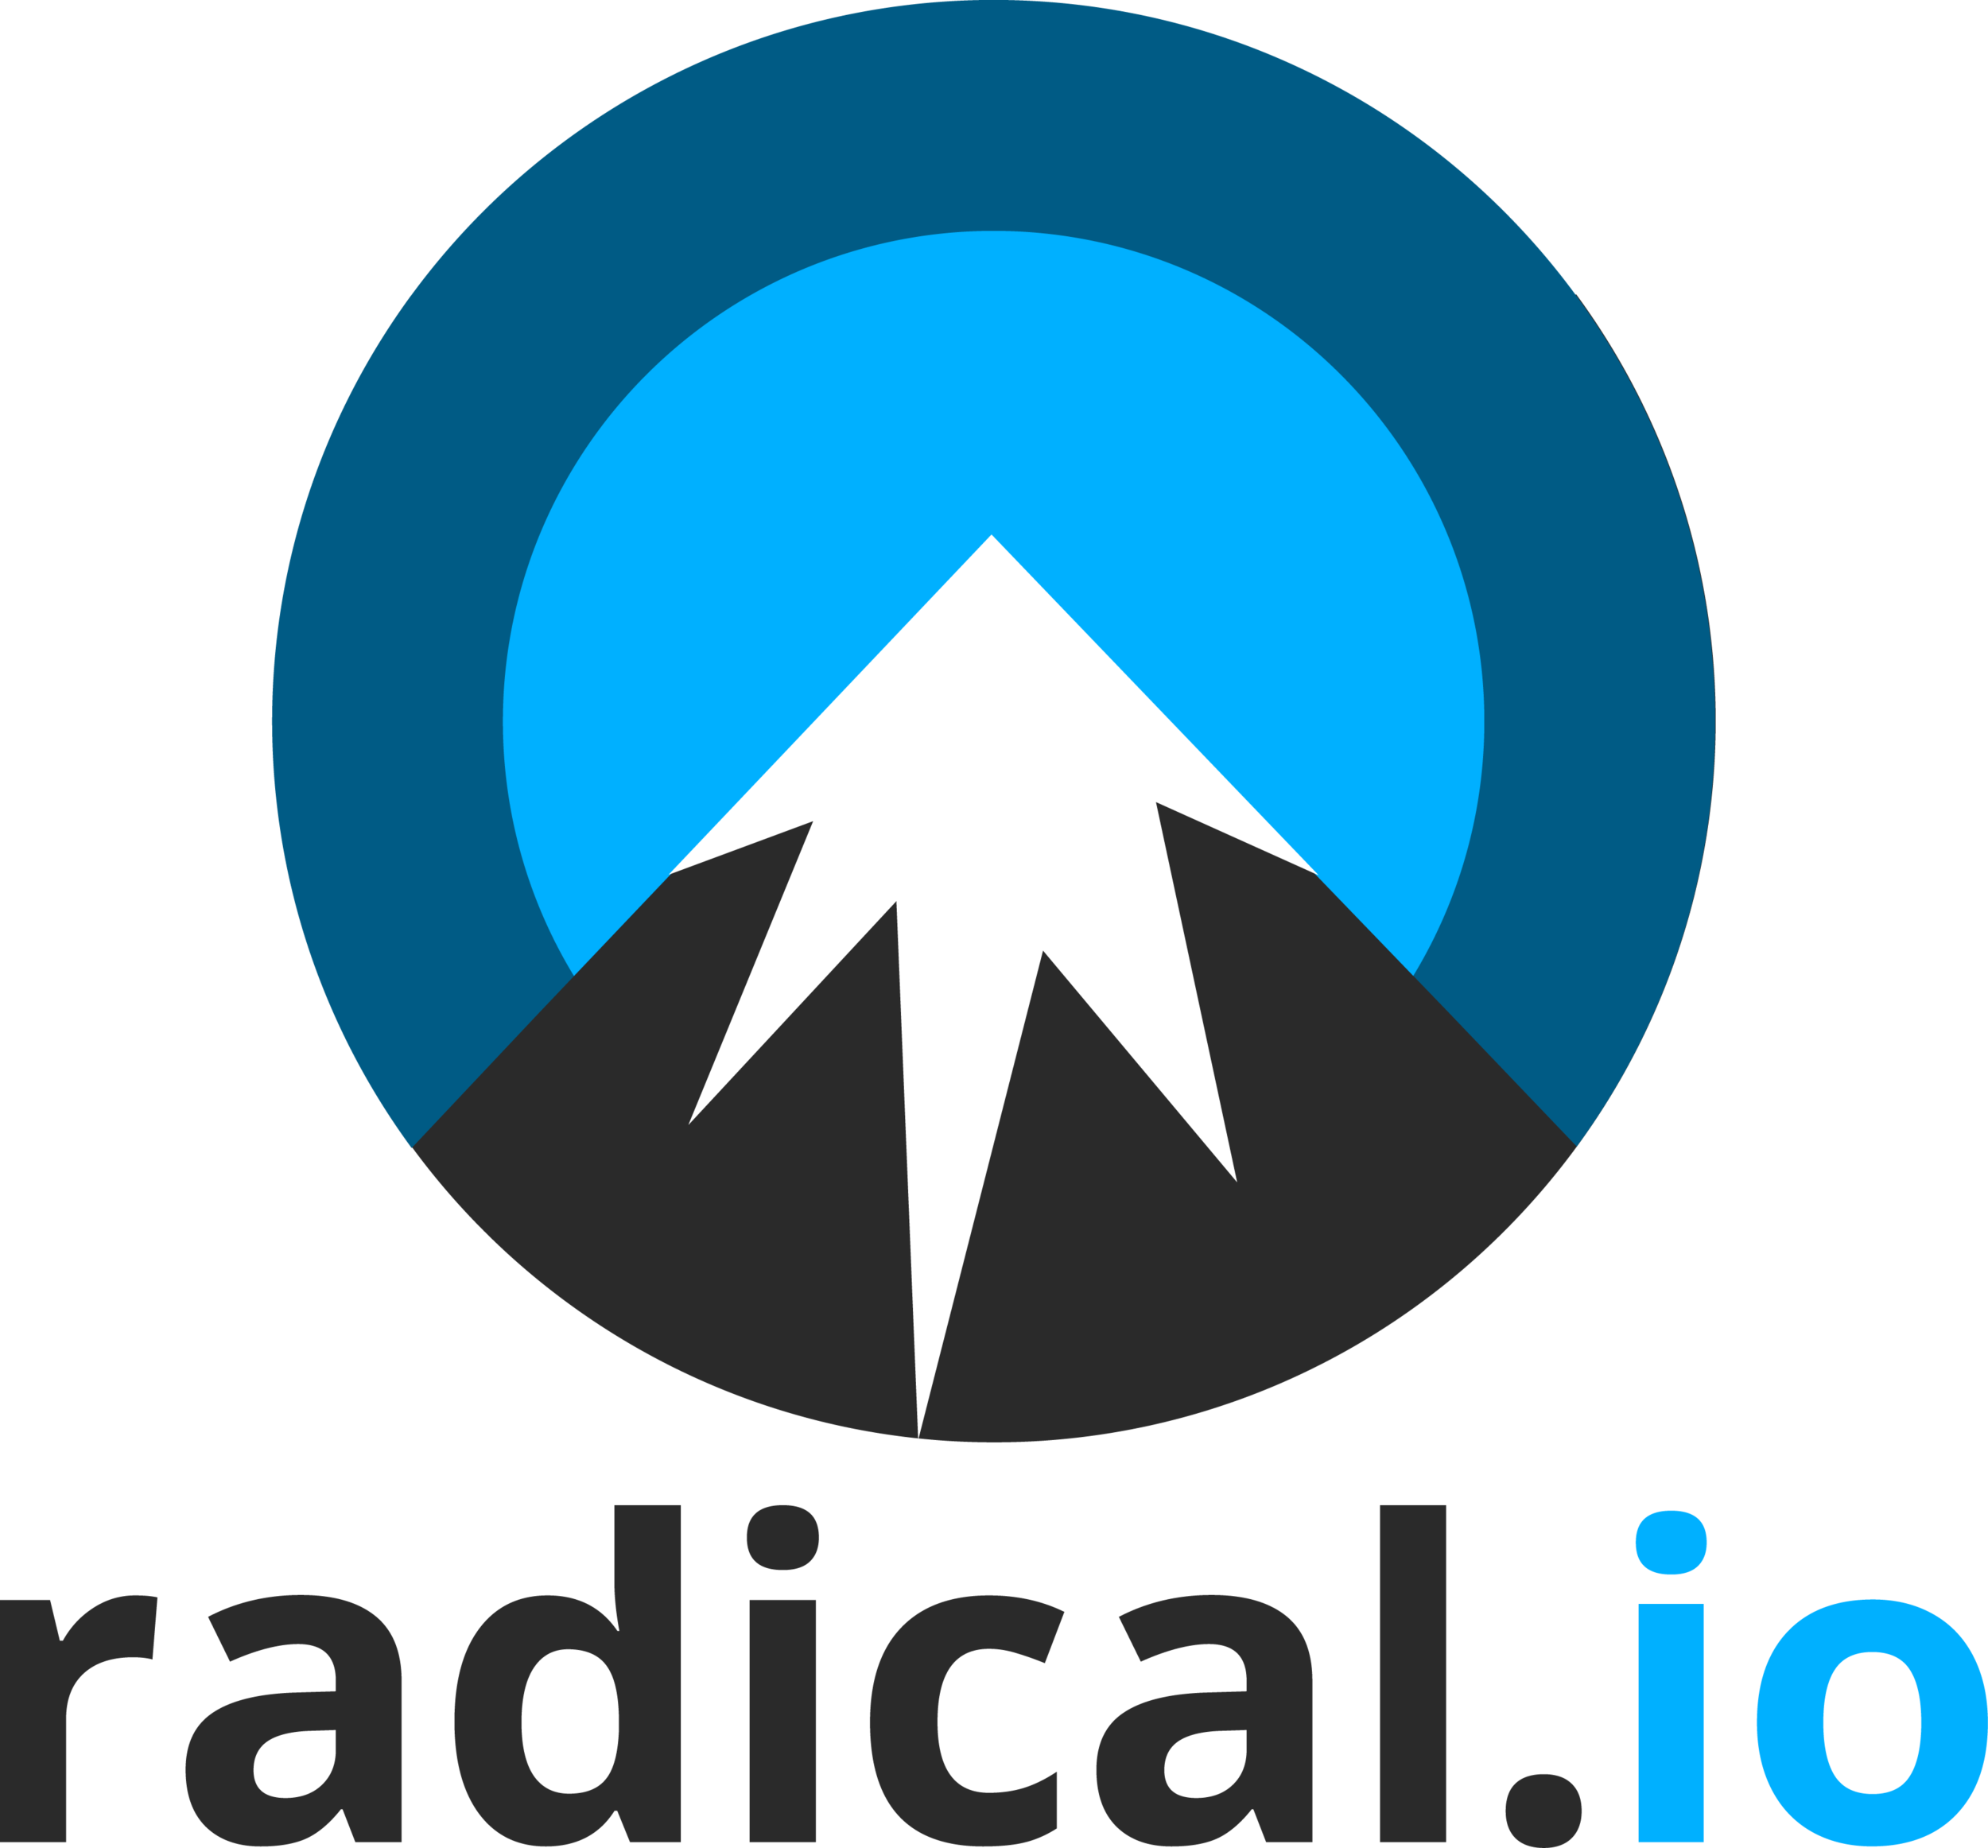 Vertical-primary_Radical-io-Round-White-01.png